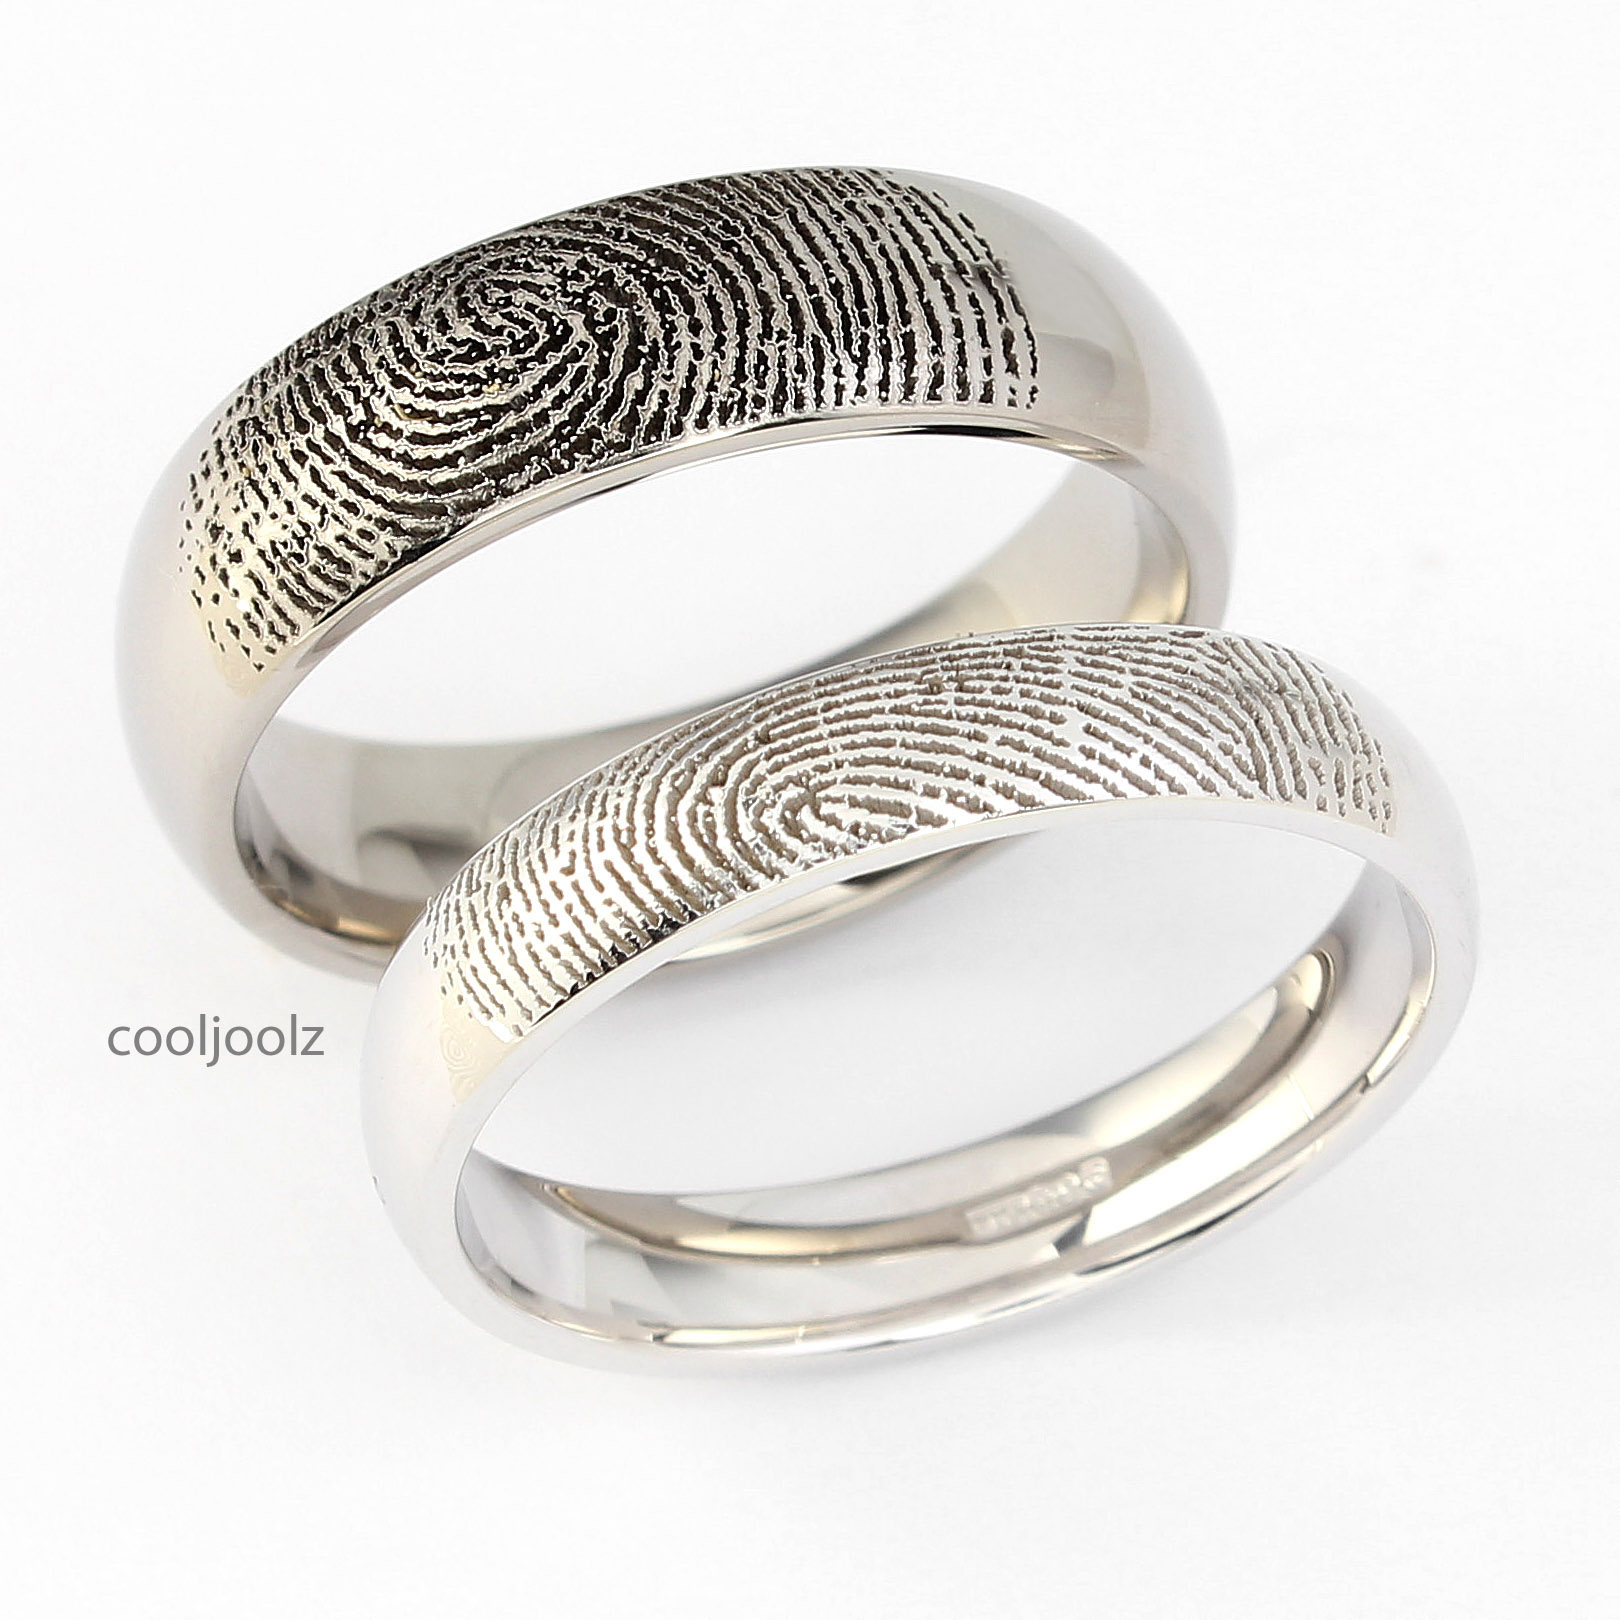 cooljoolz Wedding Rings LeedsWedding Rings Bradford